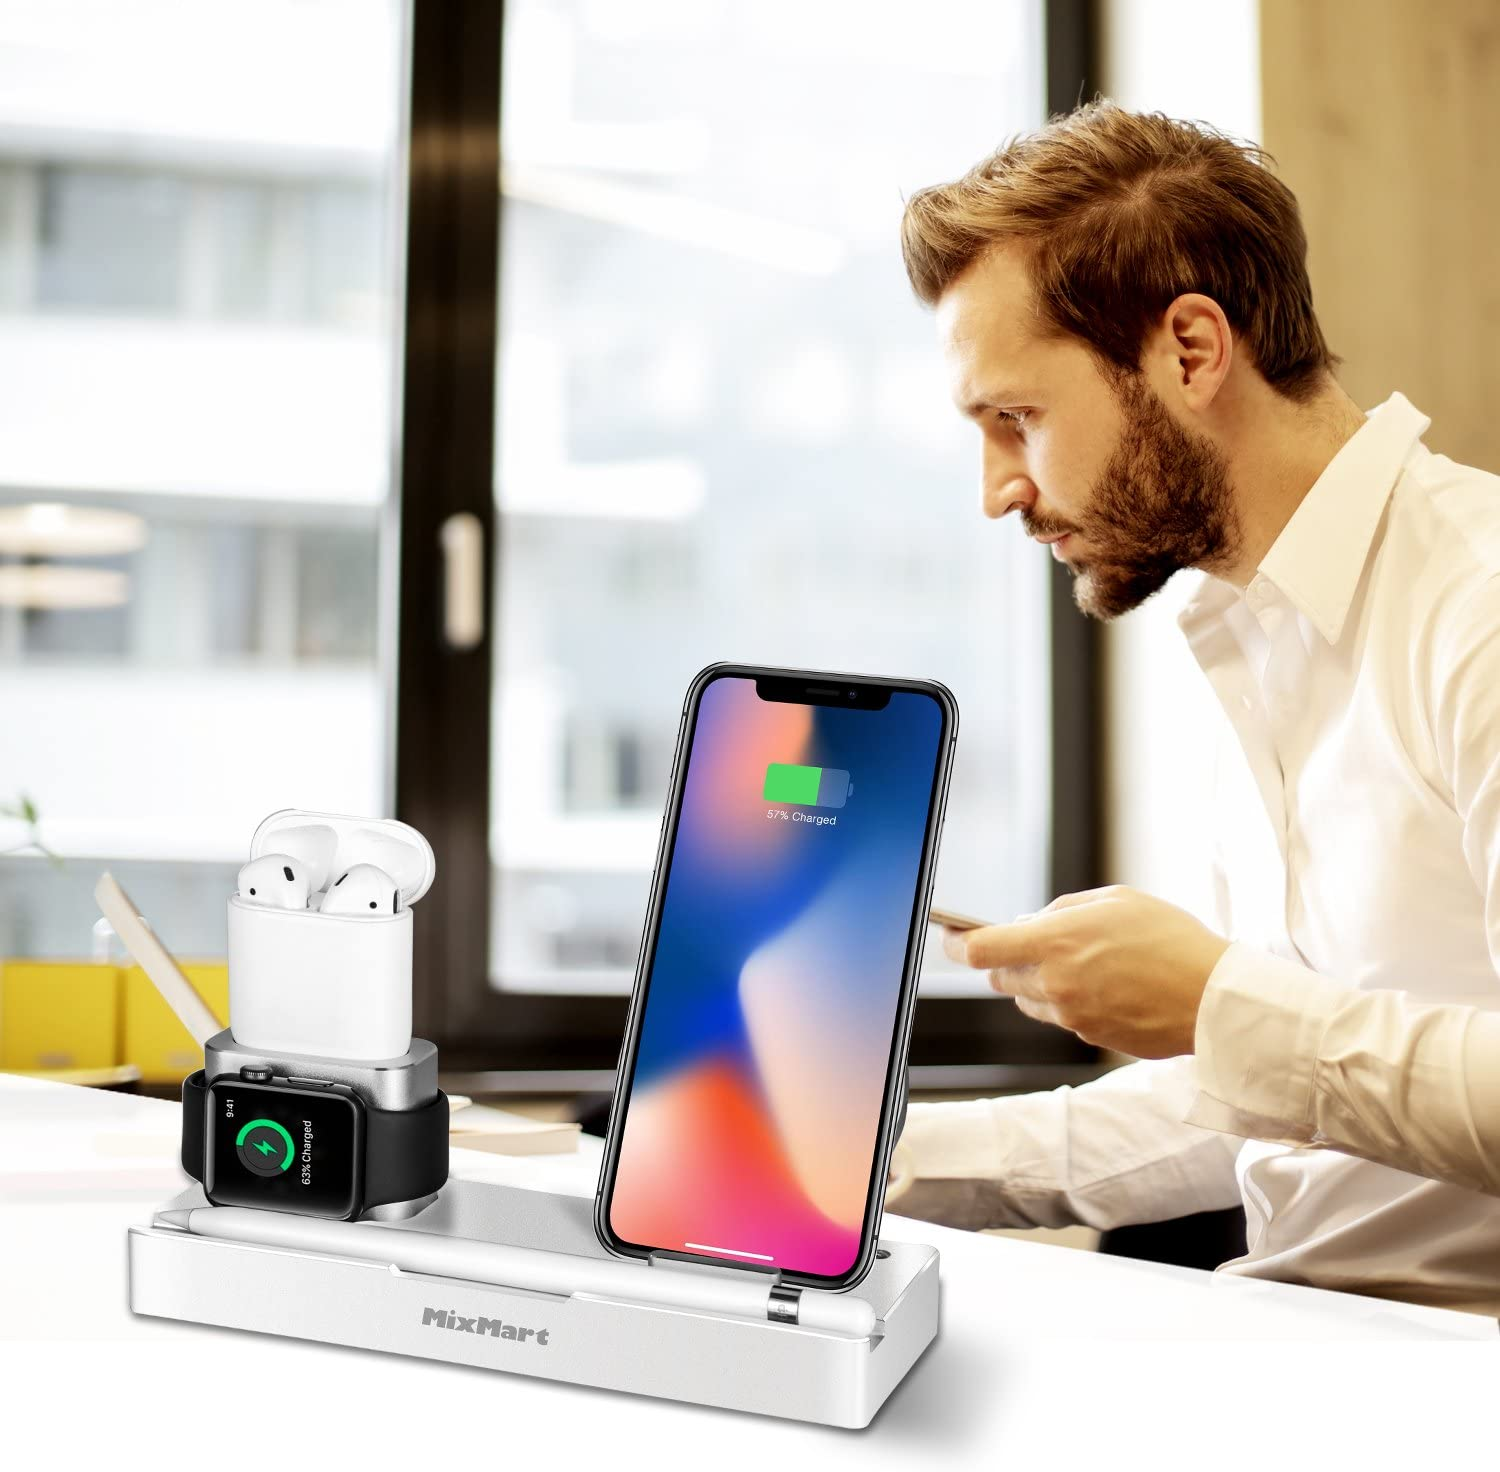 Black Detachable Wireless Charger For Samsung Galaxy S9//S8//S7//S6 Edge Wireless Charger Stand Compatible for iPhone Xs//Xs Max//Xr//X 6 in 1 Aluminum Charging Dock for iWatch//AirPods//iPad//Apple Pencil